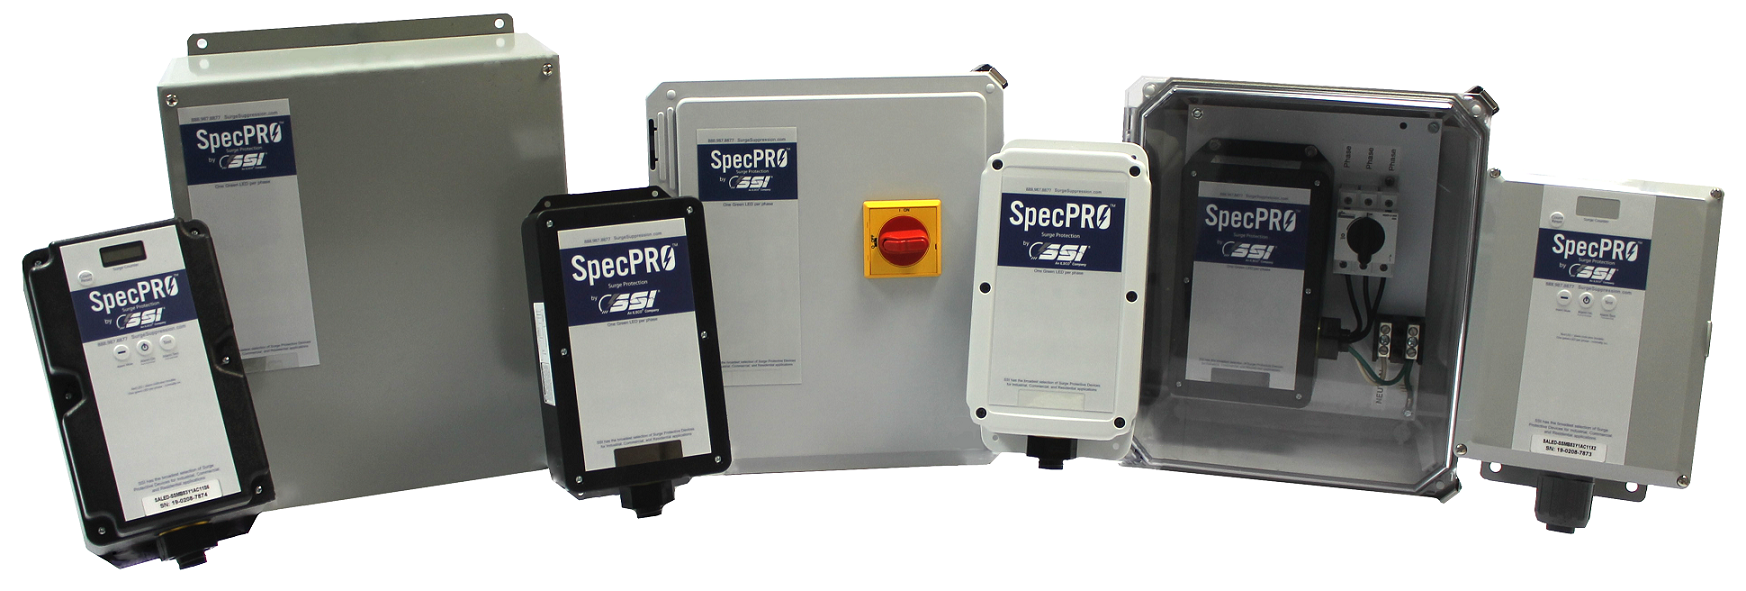 SpecPRO Group